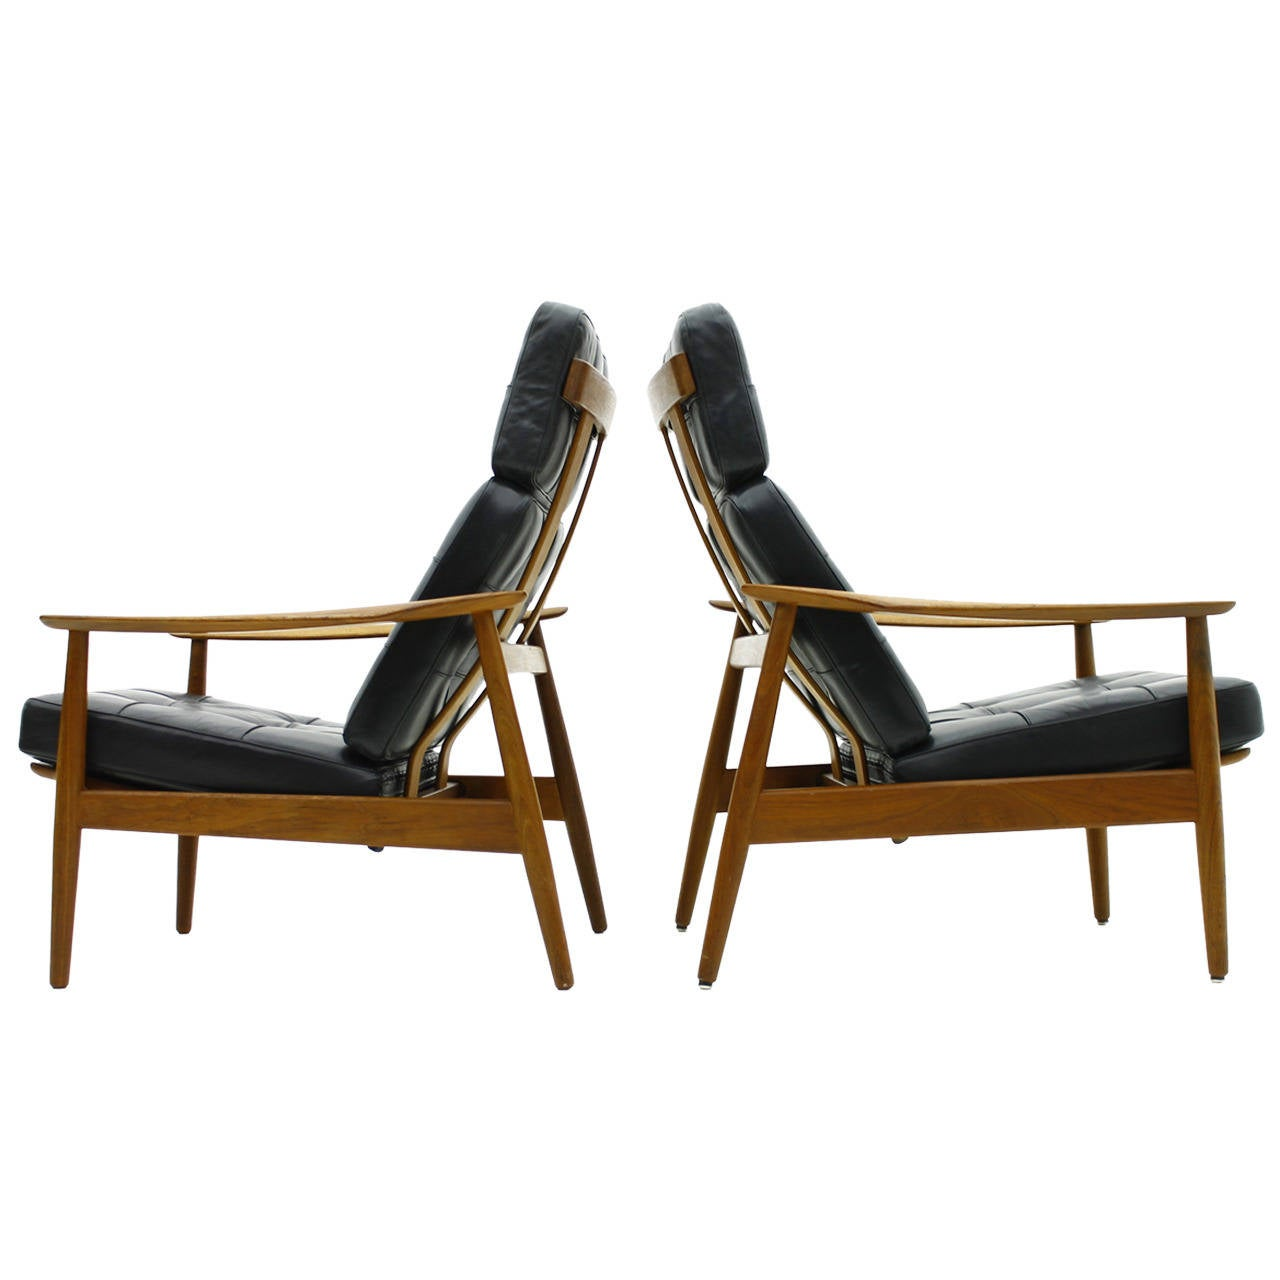 danish reclining lounge chairs teak and leather by arne vodder 1960 for sale at 1stdibs. Black Bedroom Furniture Sets. Home Design Ideas